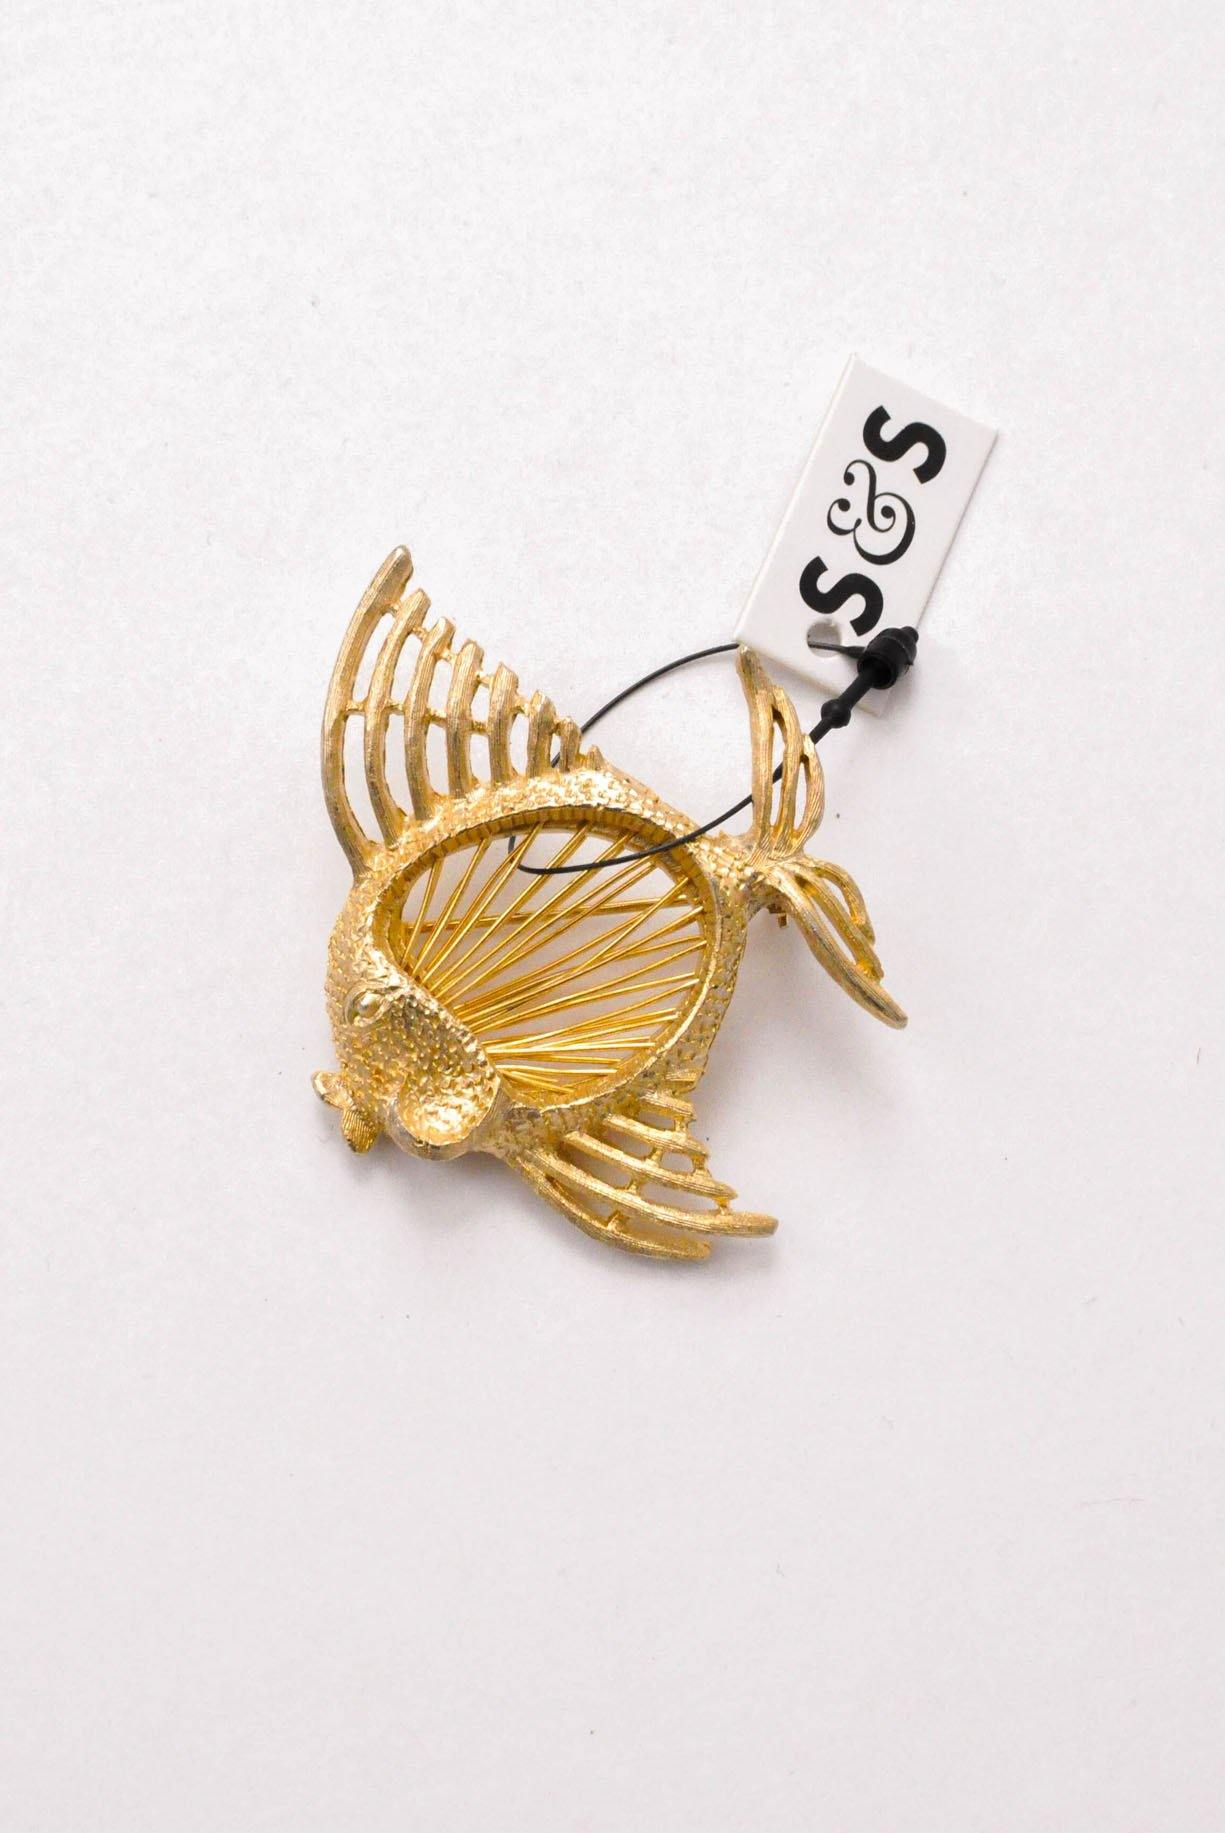 Vintage fish brooch from Sweet & Spark.